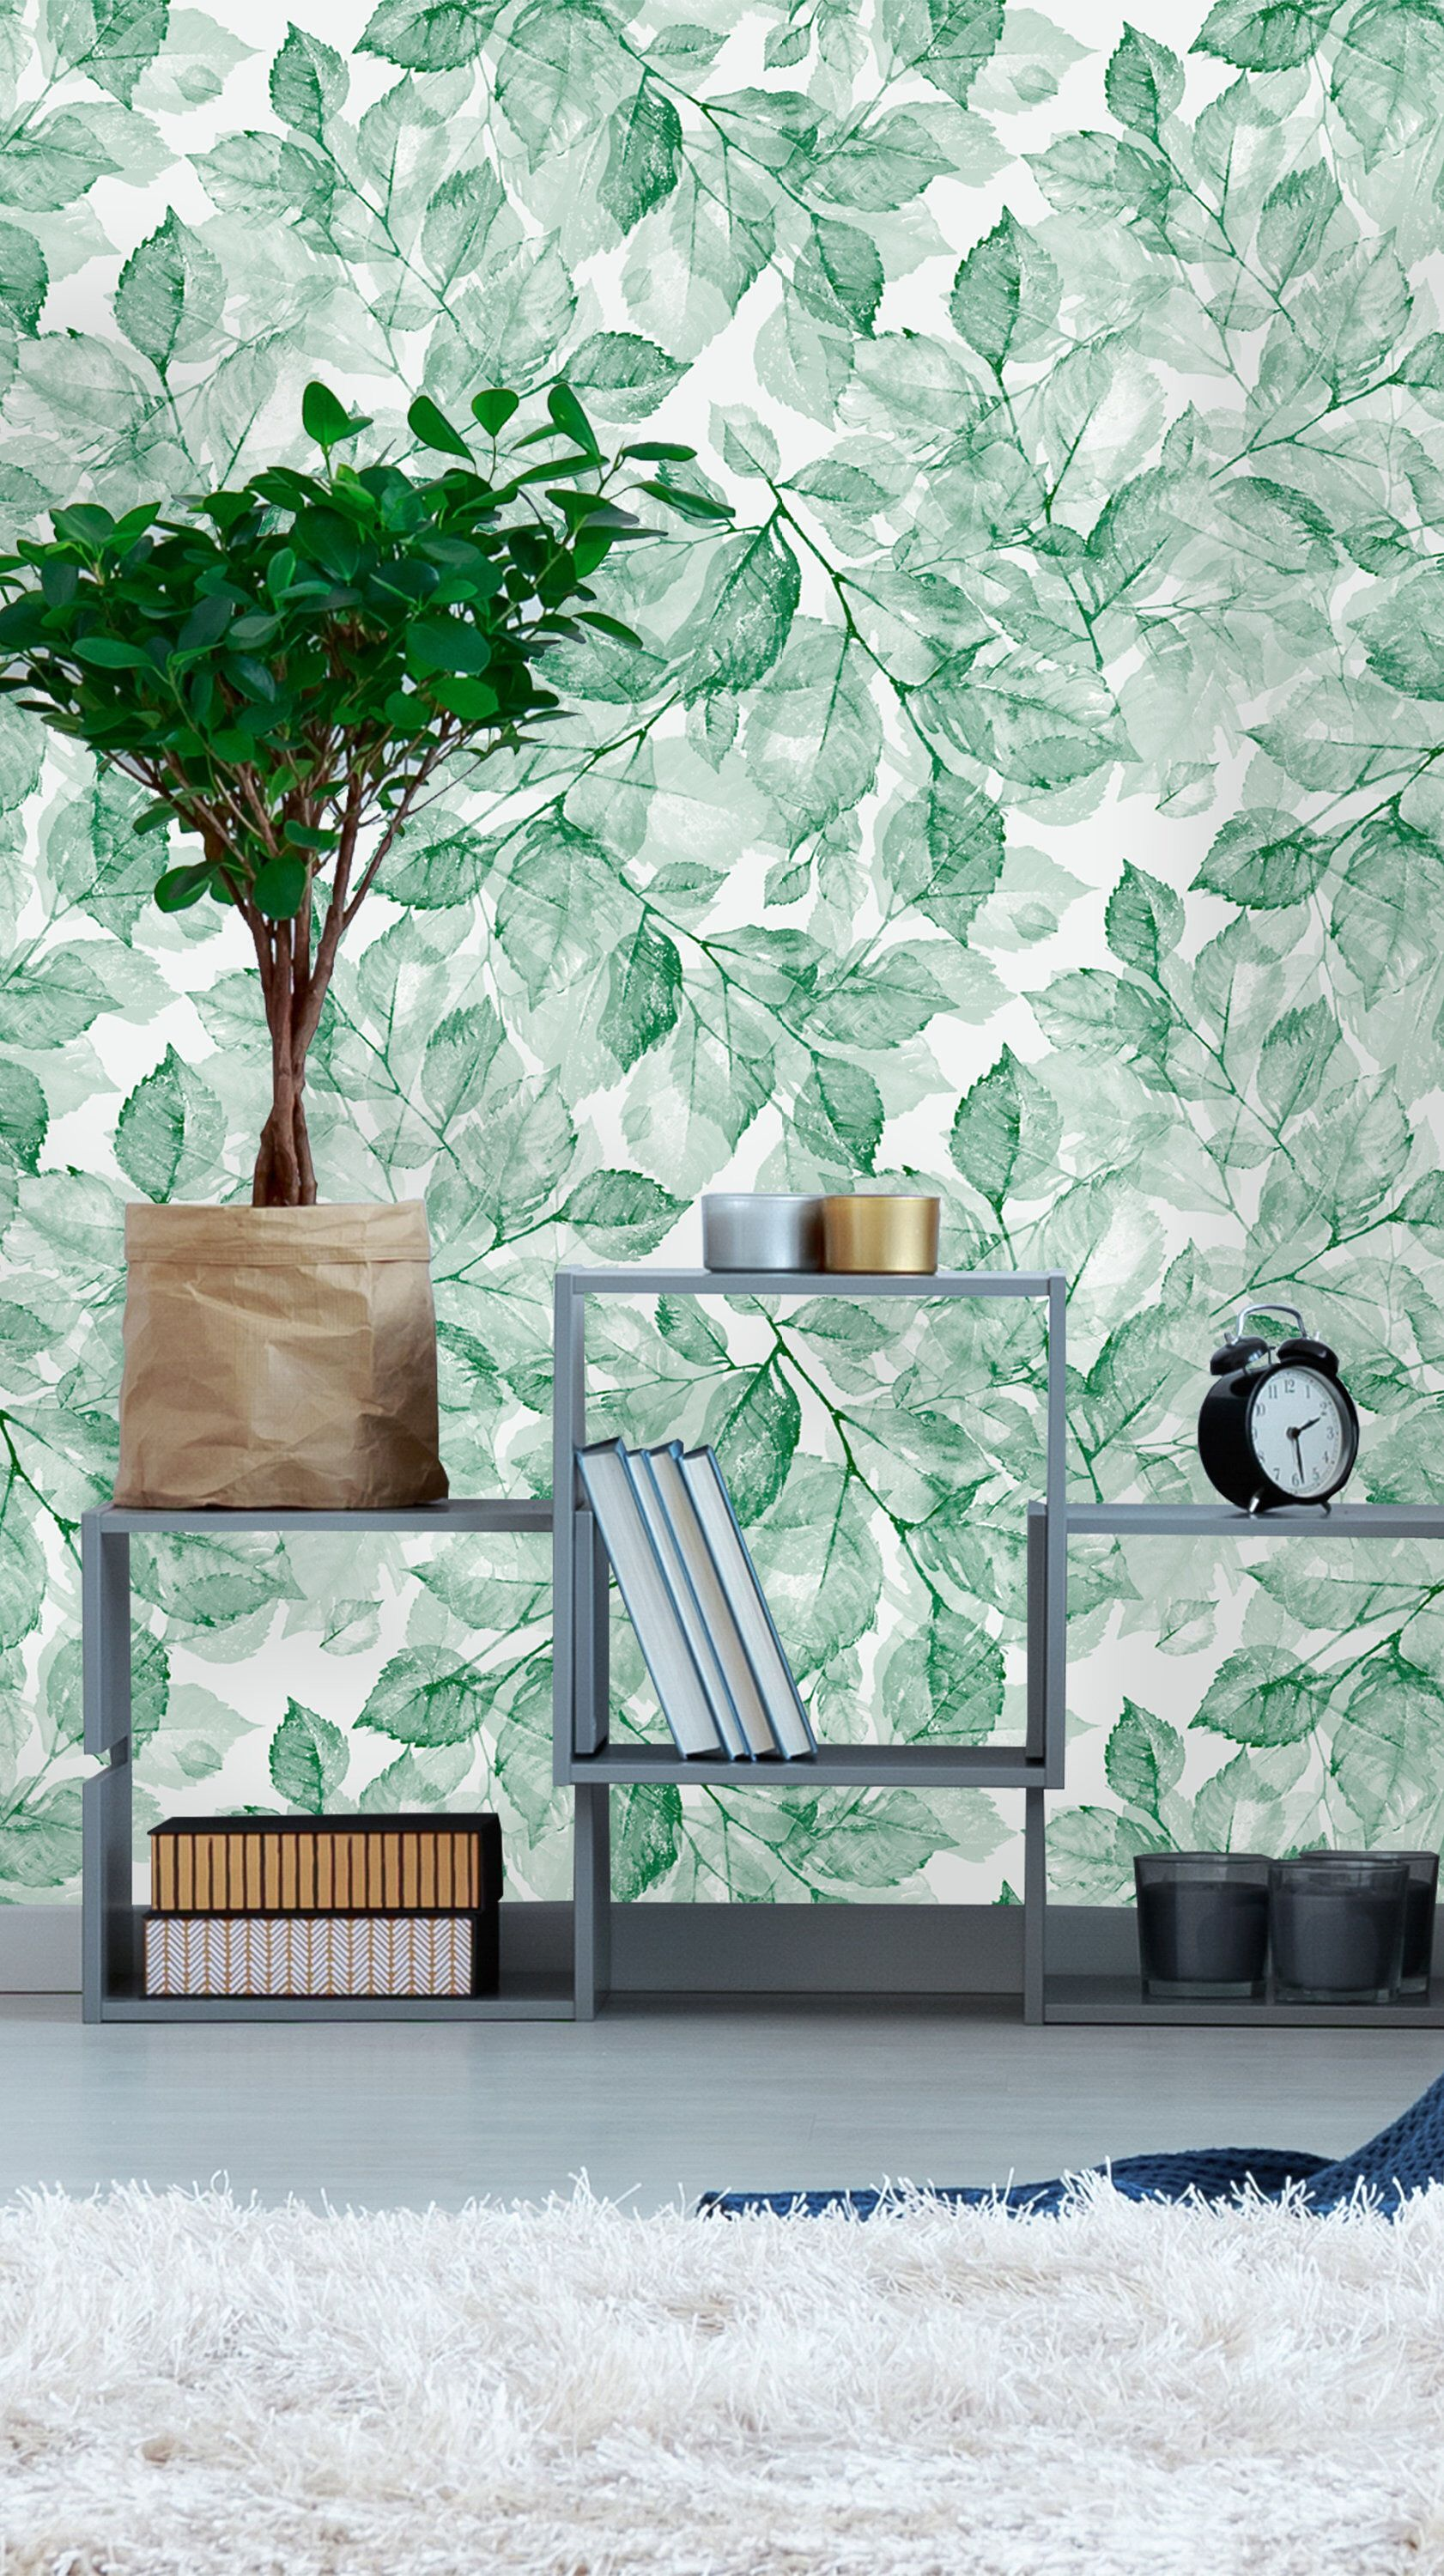 Removable Wallpaper Self Adhesive Wallpaper Green Watercolor 1682x3000